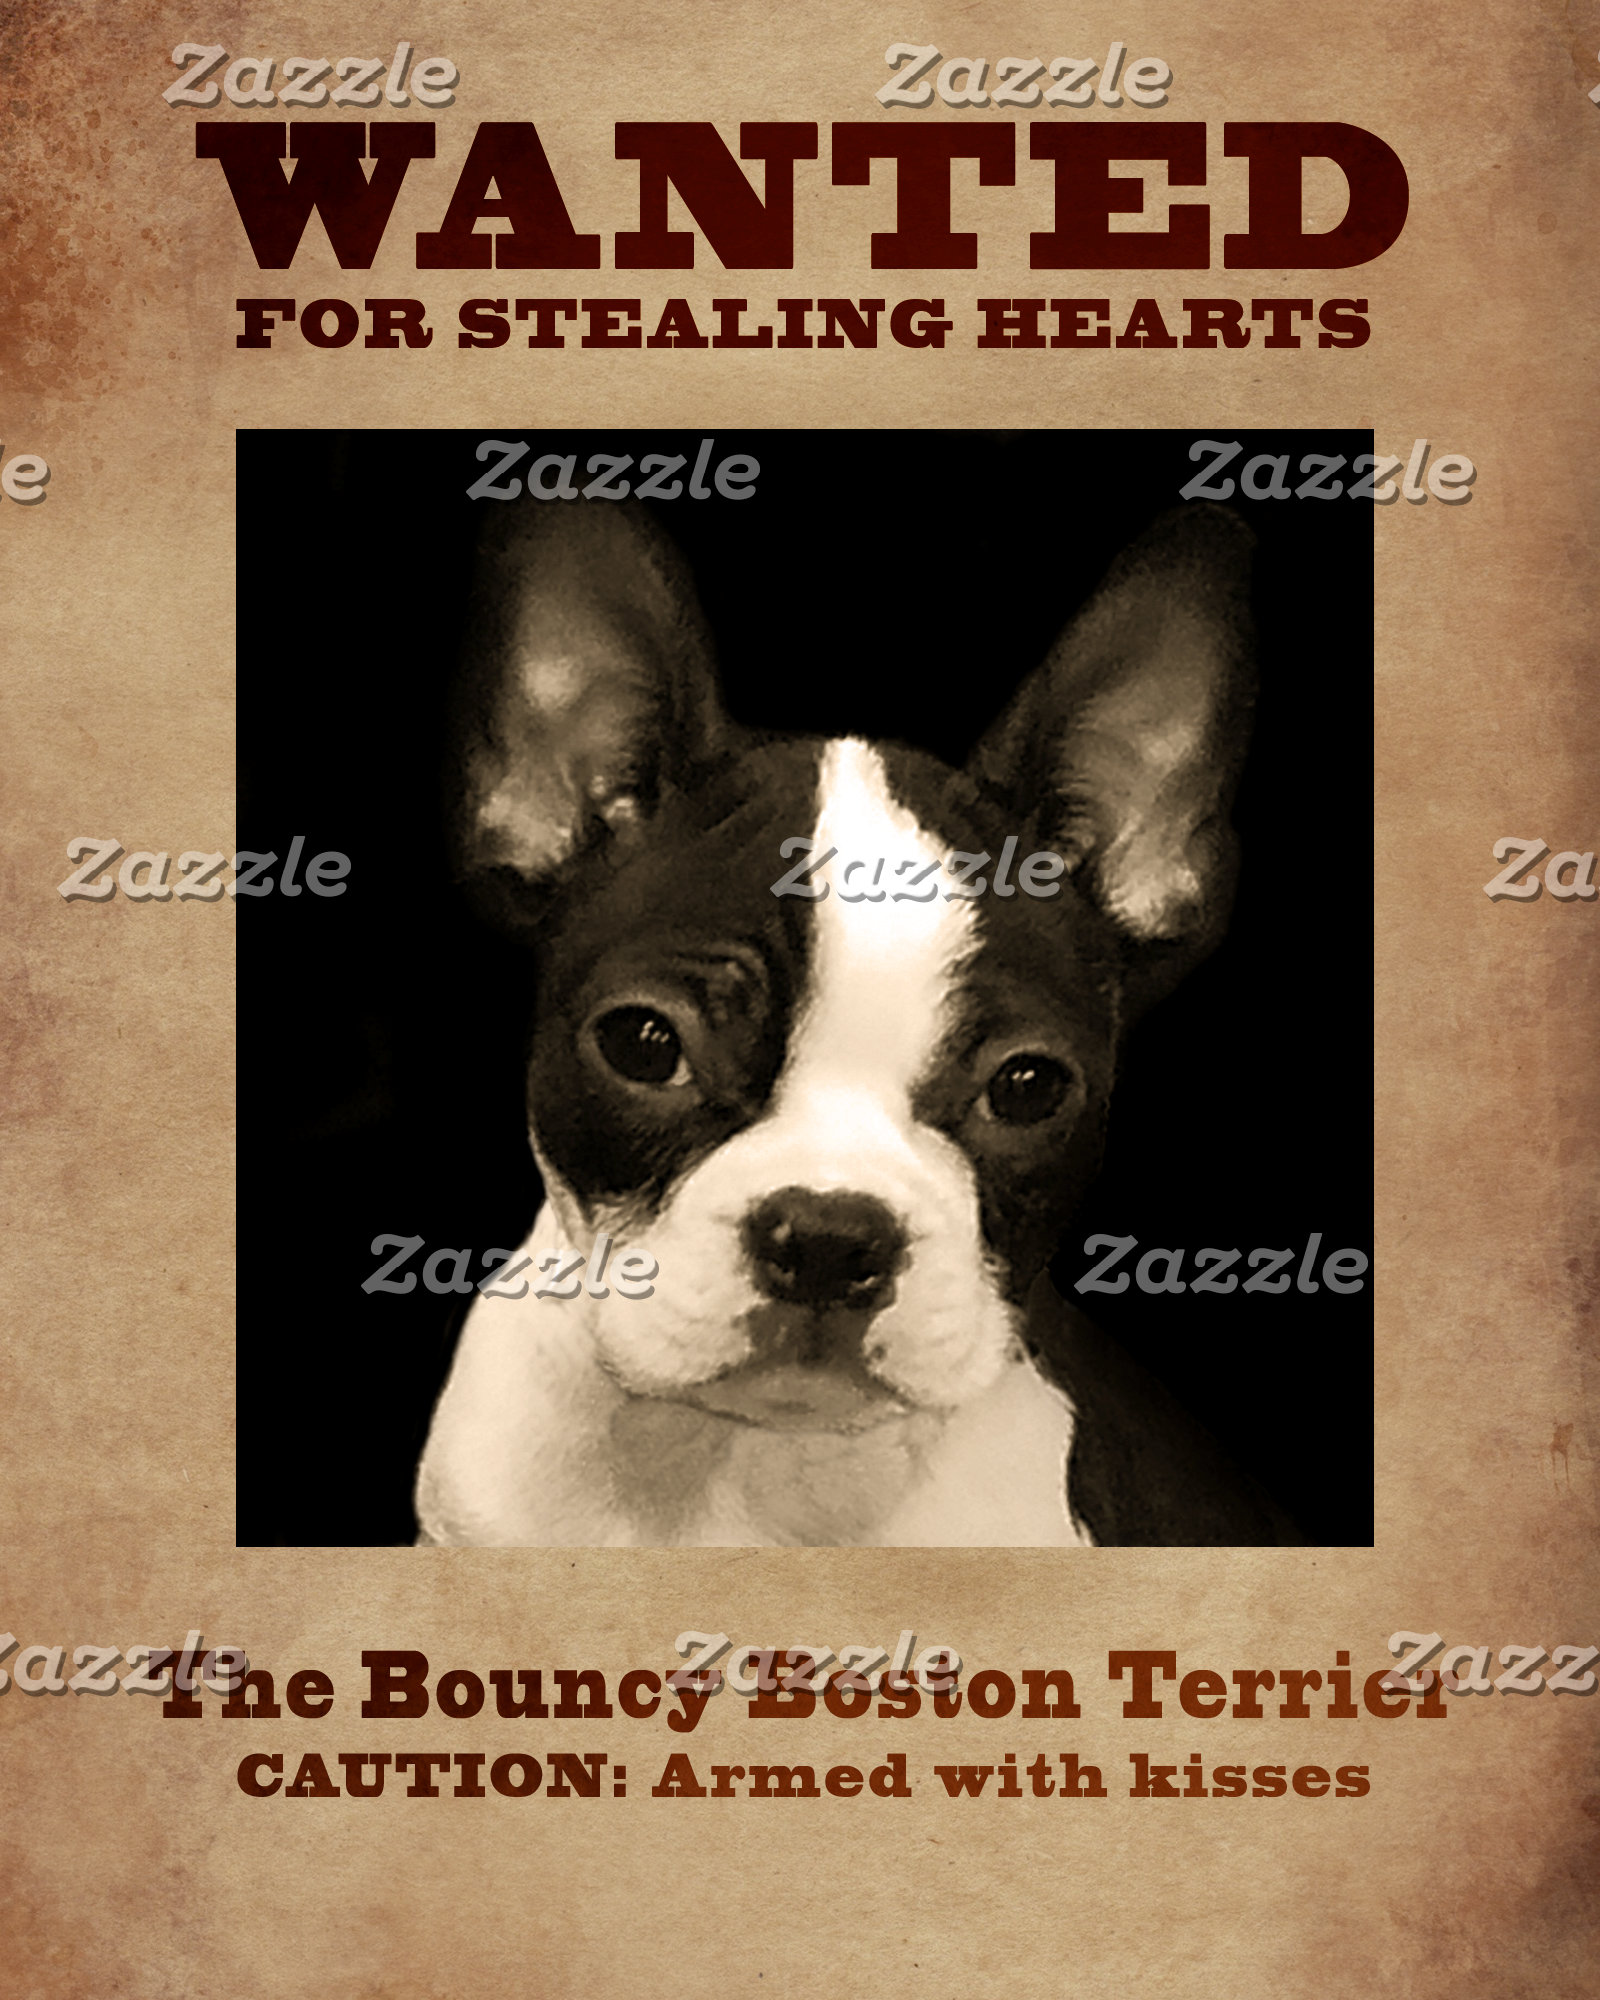 The Bouncy Boston Terrier